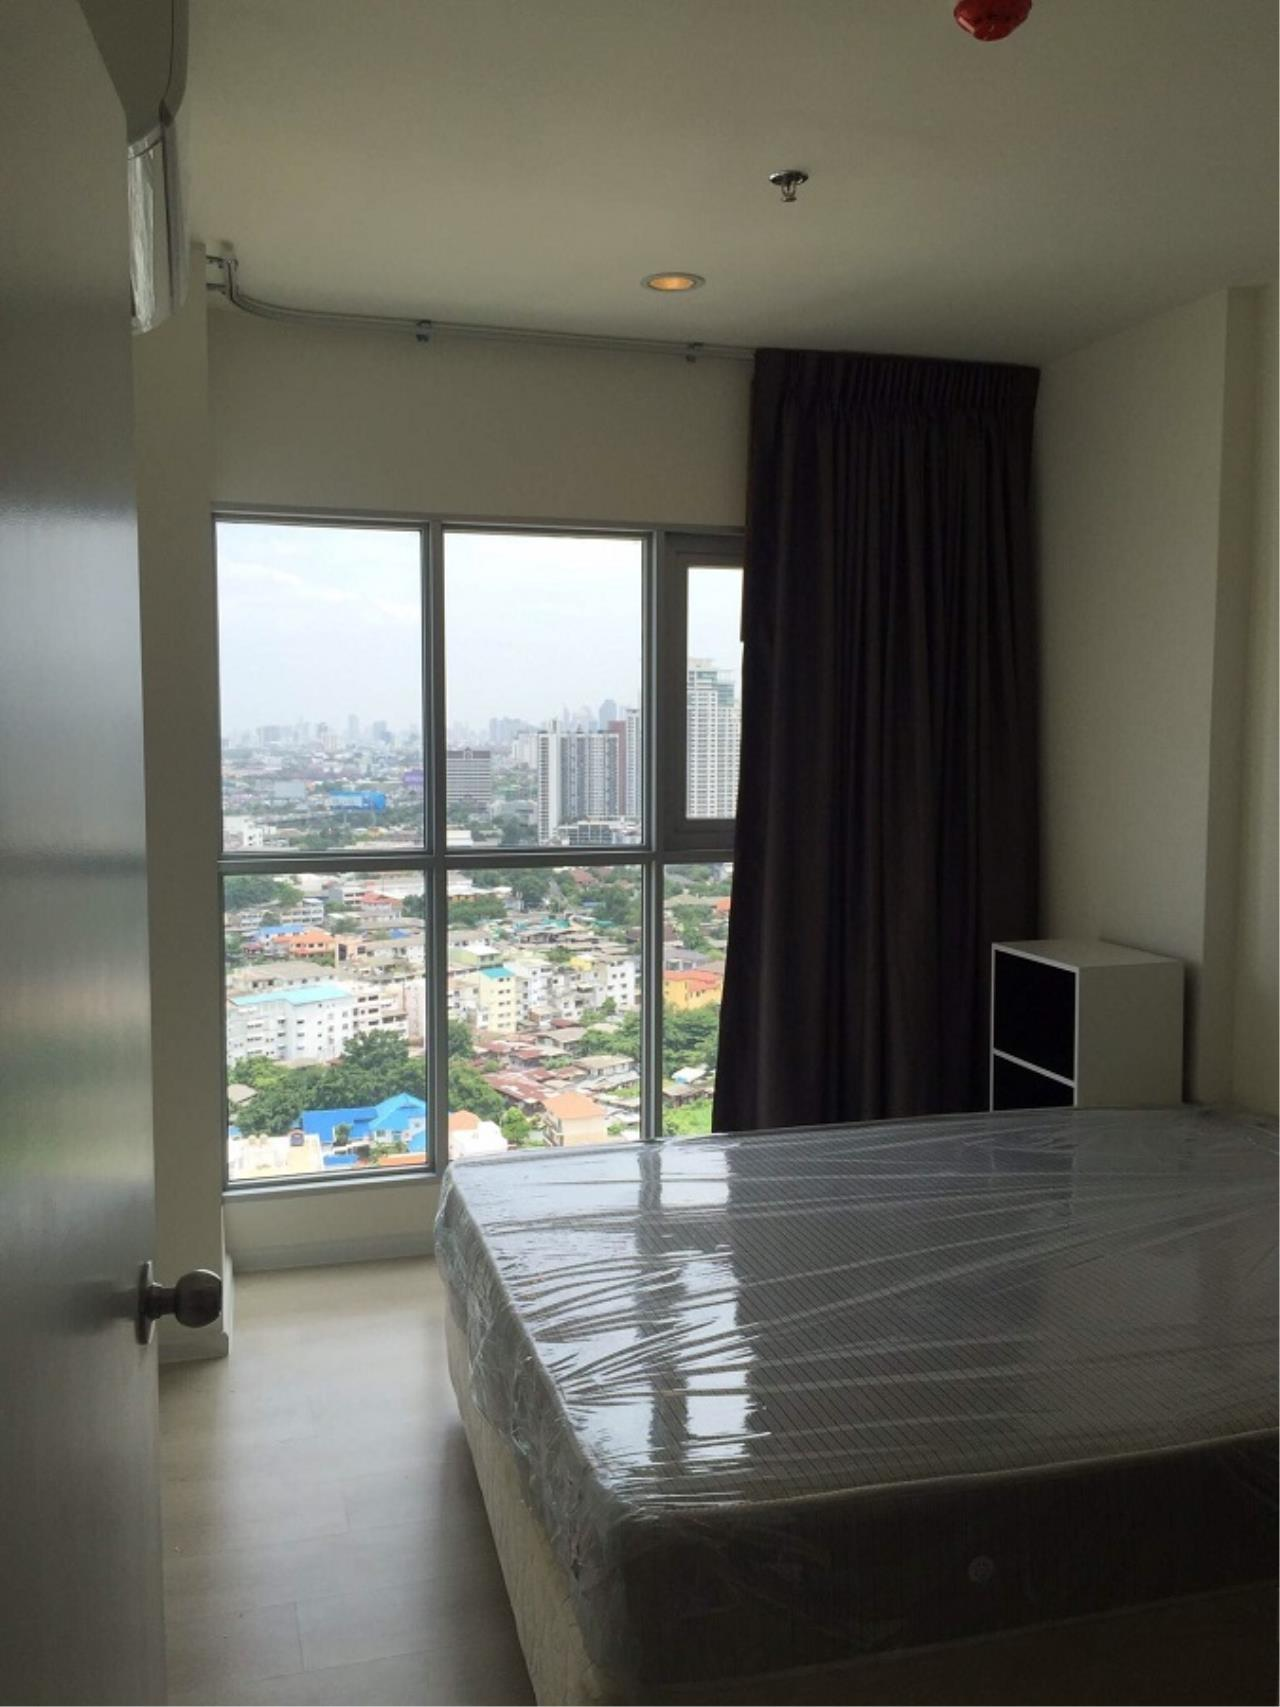 RE/MAX All Star Realty Agency's Aspire Sukhumvit Soi 48 condo rent one/two beds (BTS Phra Khanong) 2